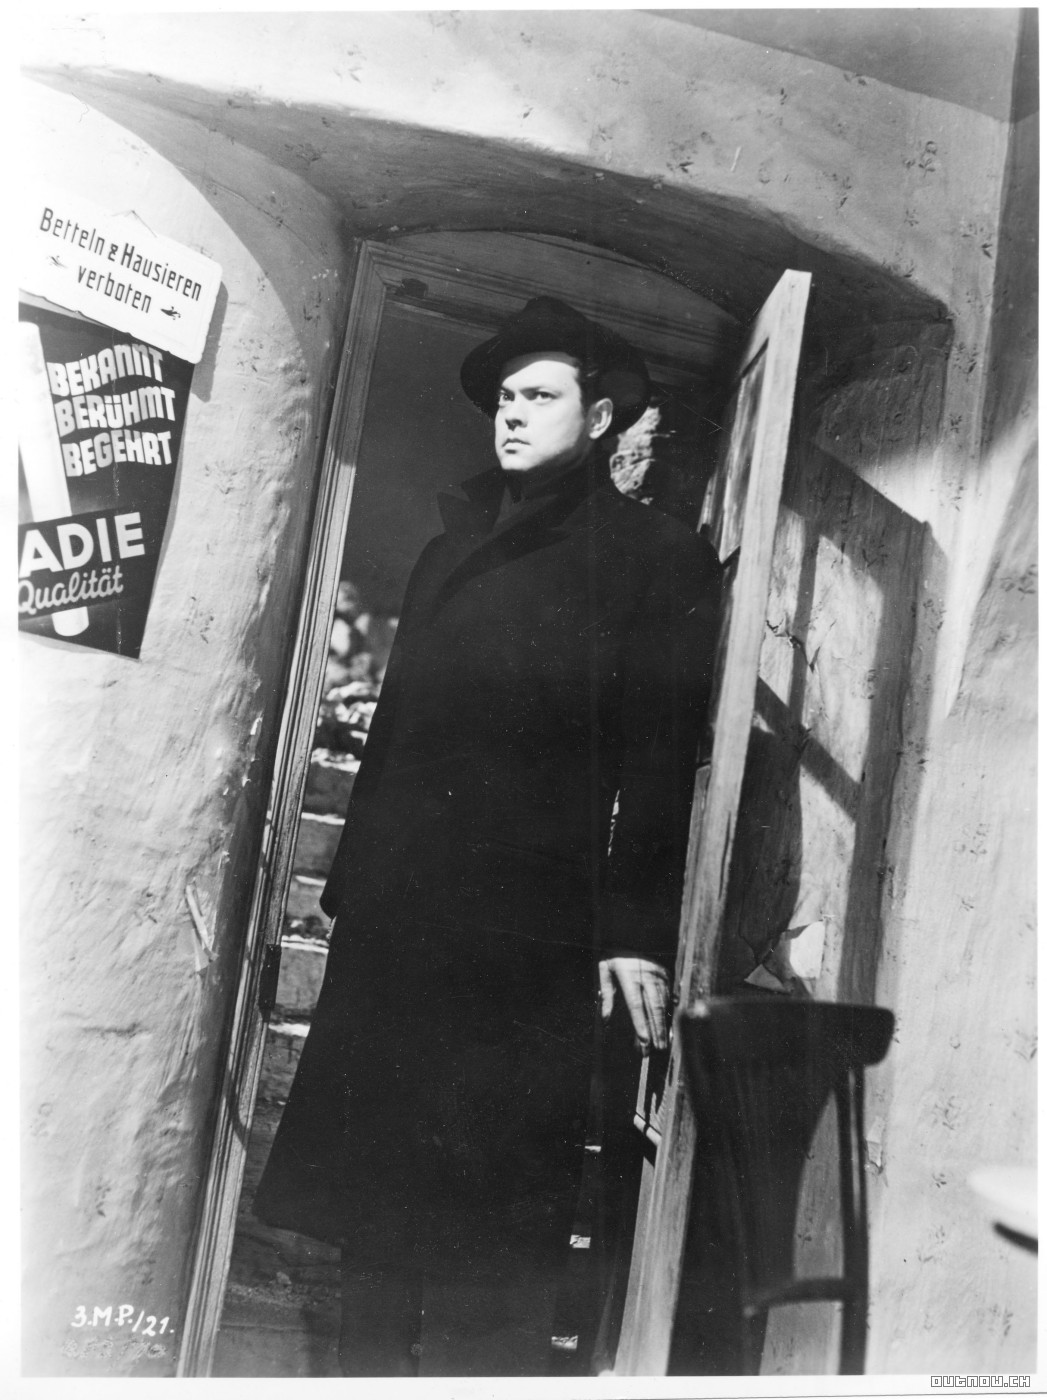 Orson Welles as Harry Lime in Carol Reed's The Third Man, 194